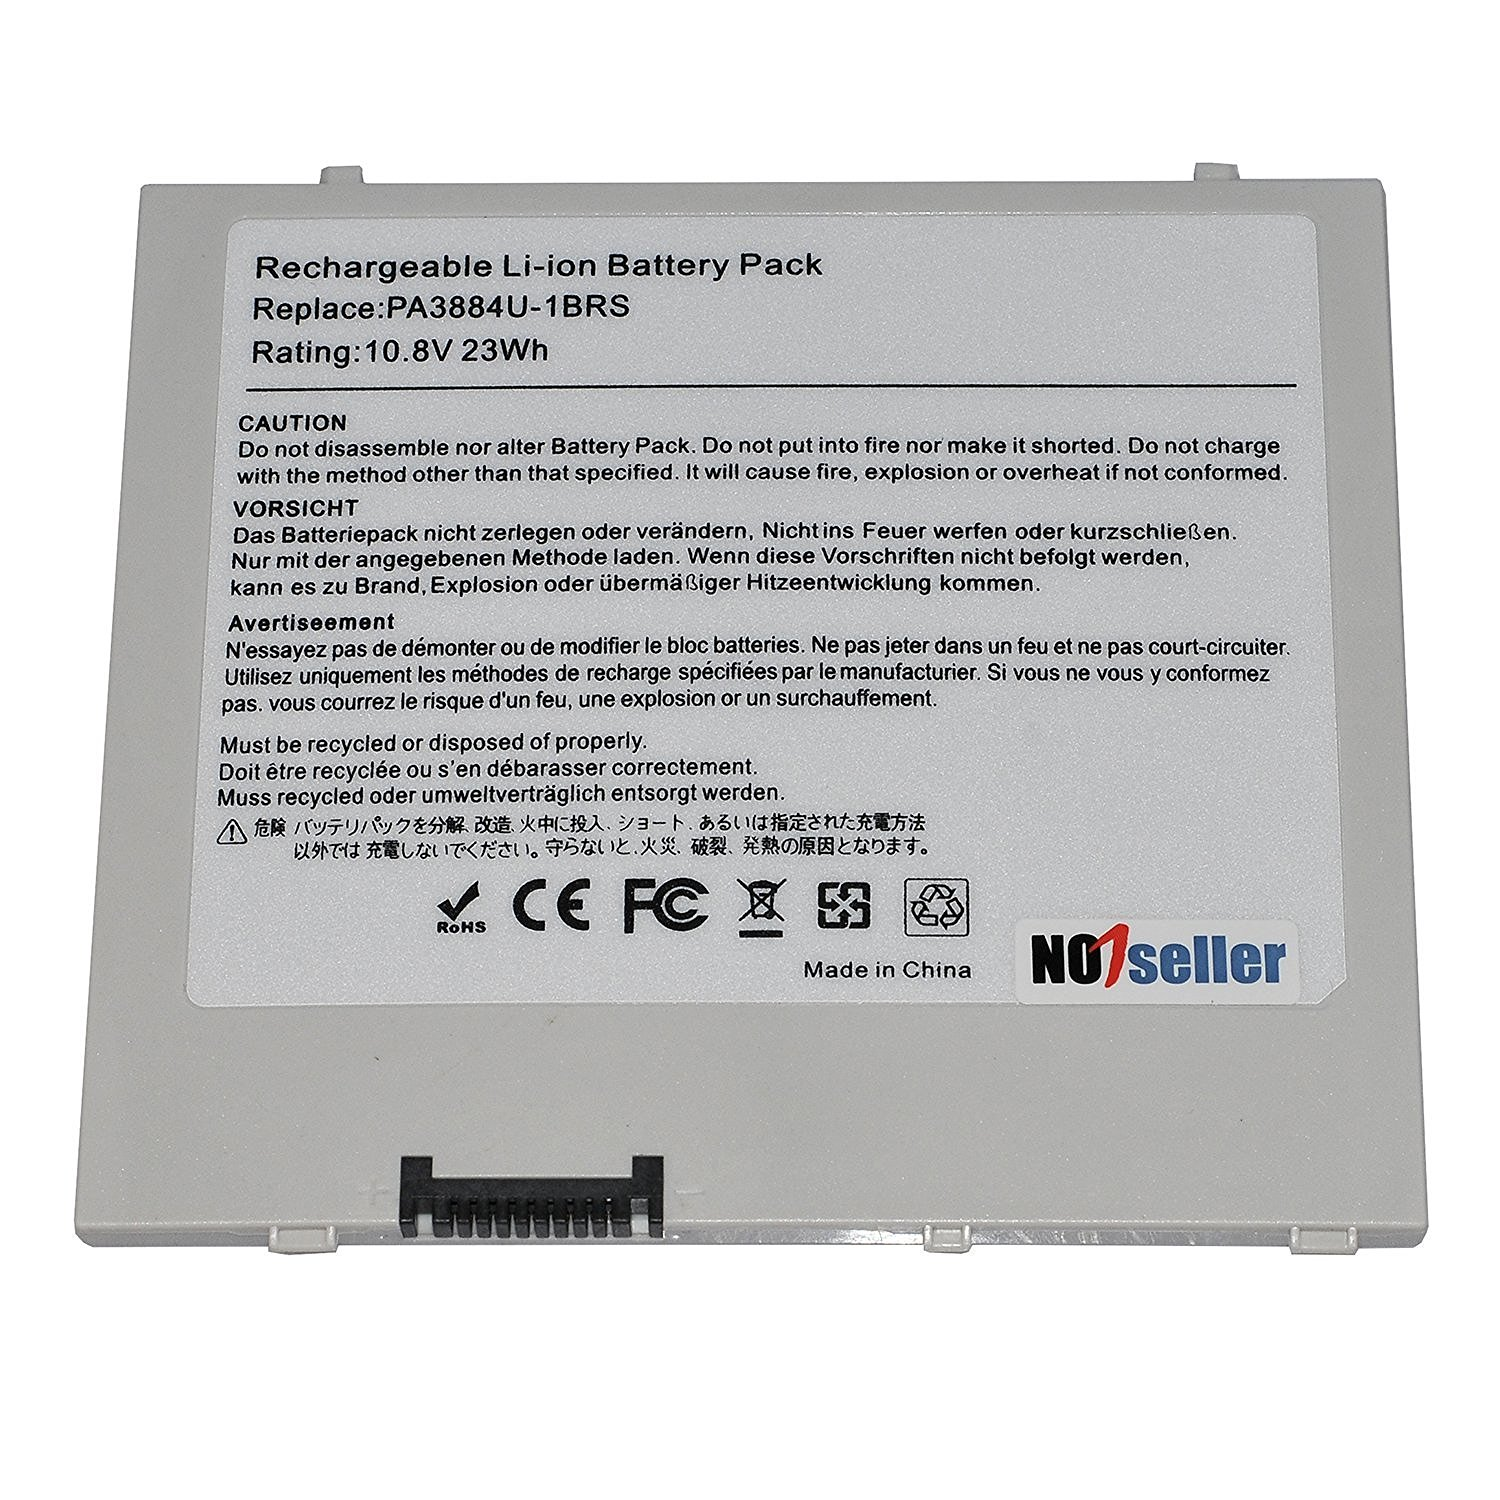 "Toshiba Thrive Pad Battery, No1seller 23WH 10.8V replacement battery for Toshiba Thrive 10"" 10.1"" 7 Pad Tablet At105 Series laptop Pa3884u-1brr Pa3884u-1brs Pa3966u-1ead Pabas243"